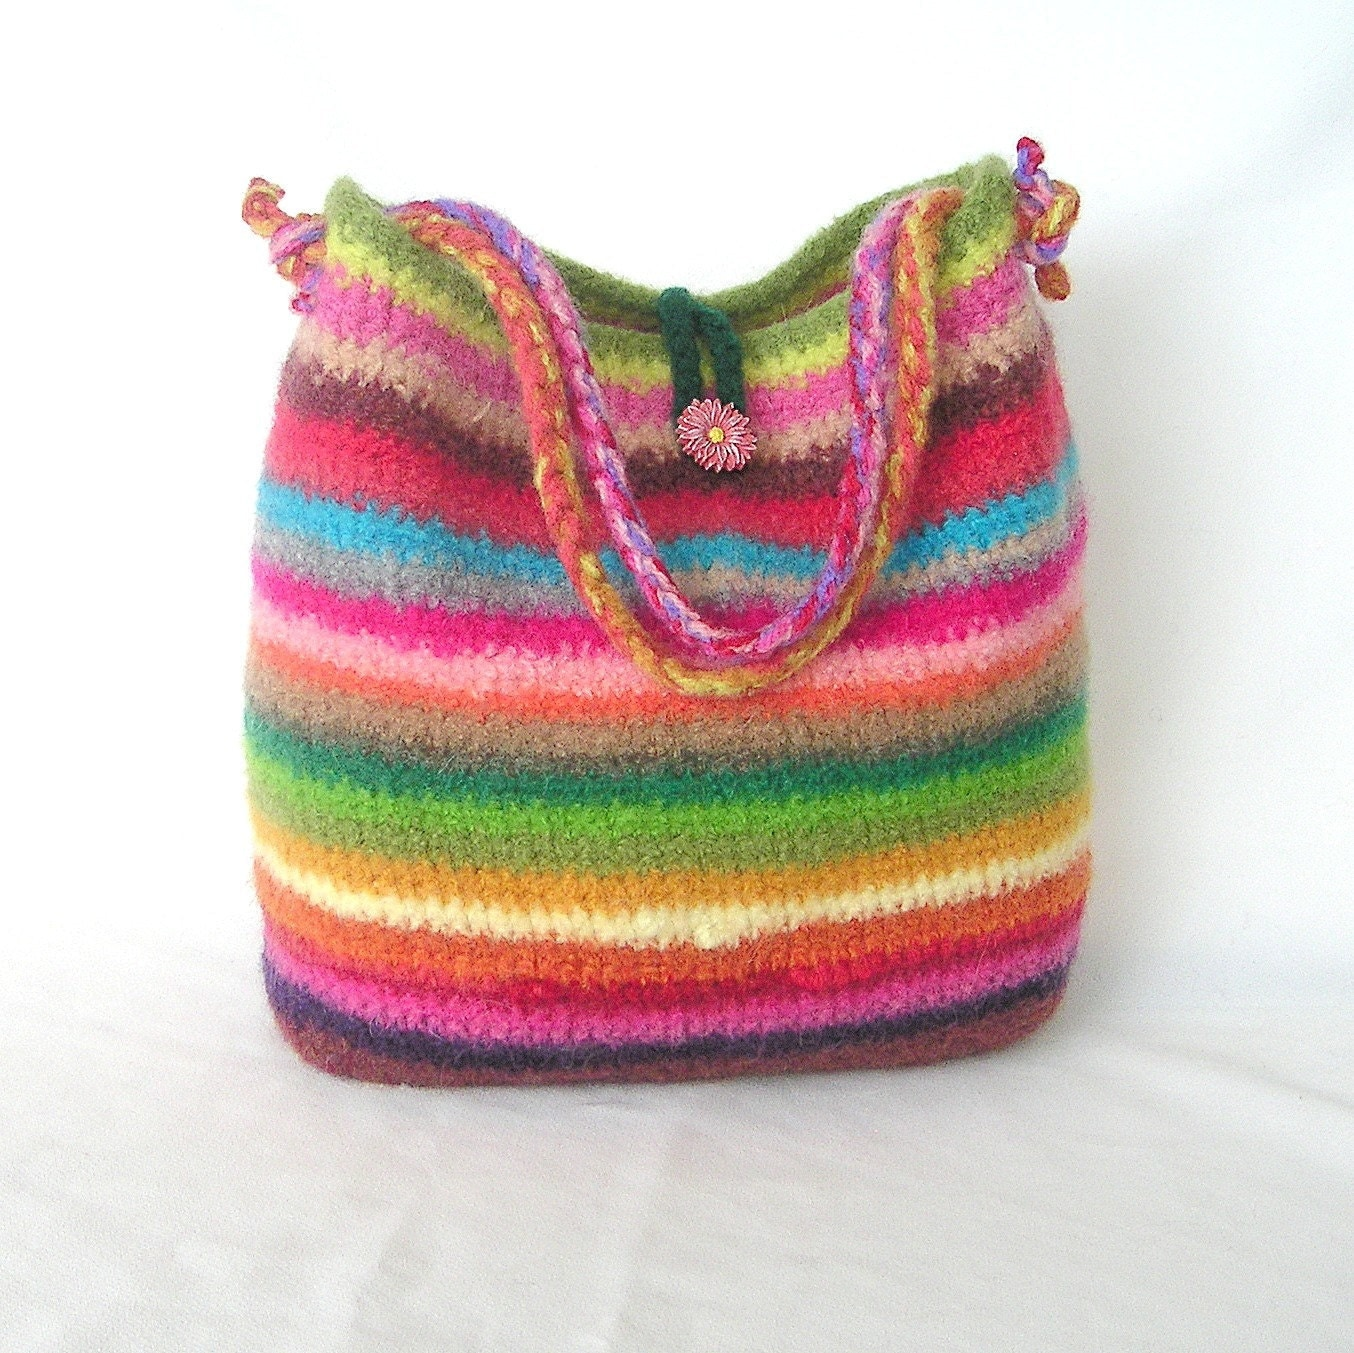 Felted Crochet Bag Pattern - Your Own Purse Making Guide